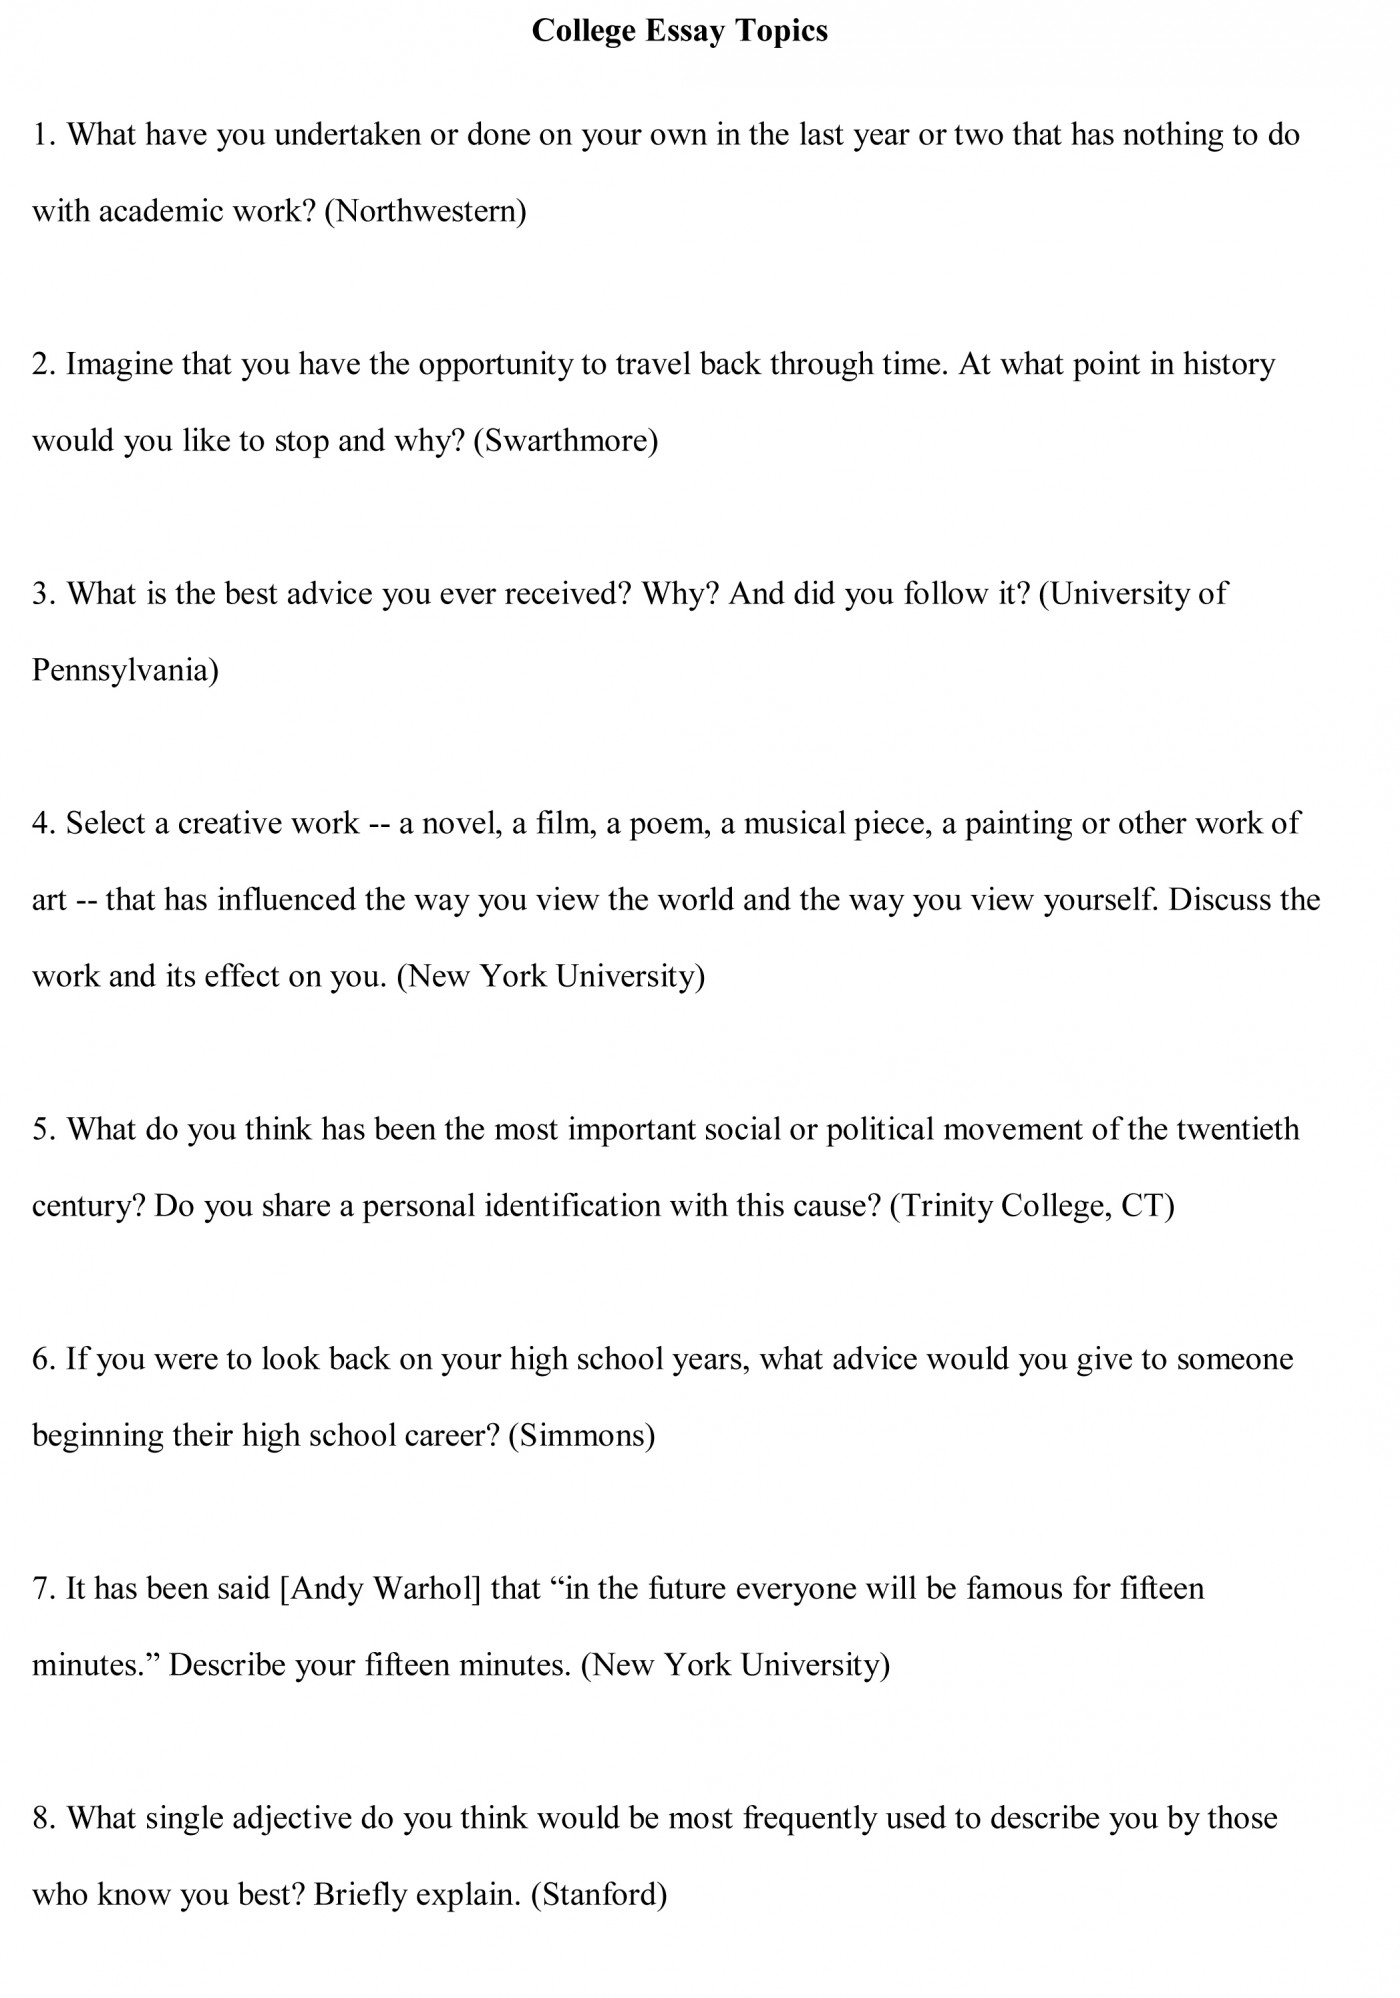 003 College Essay Topics Free Sample1 Prompts Impressive About Yourself Texas Tech 1400